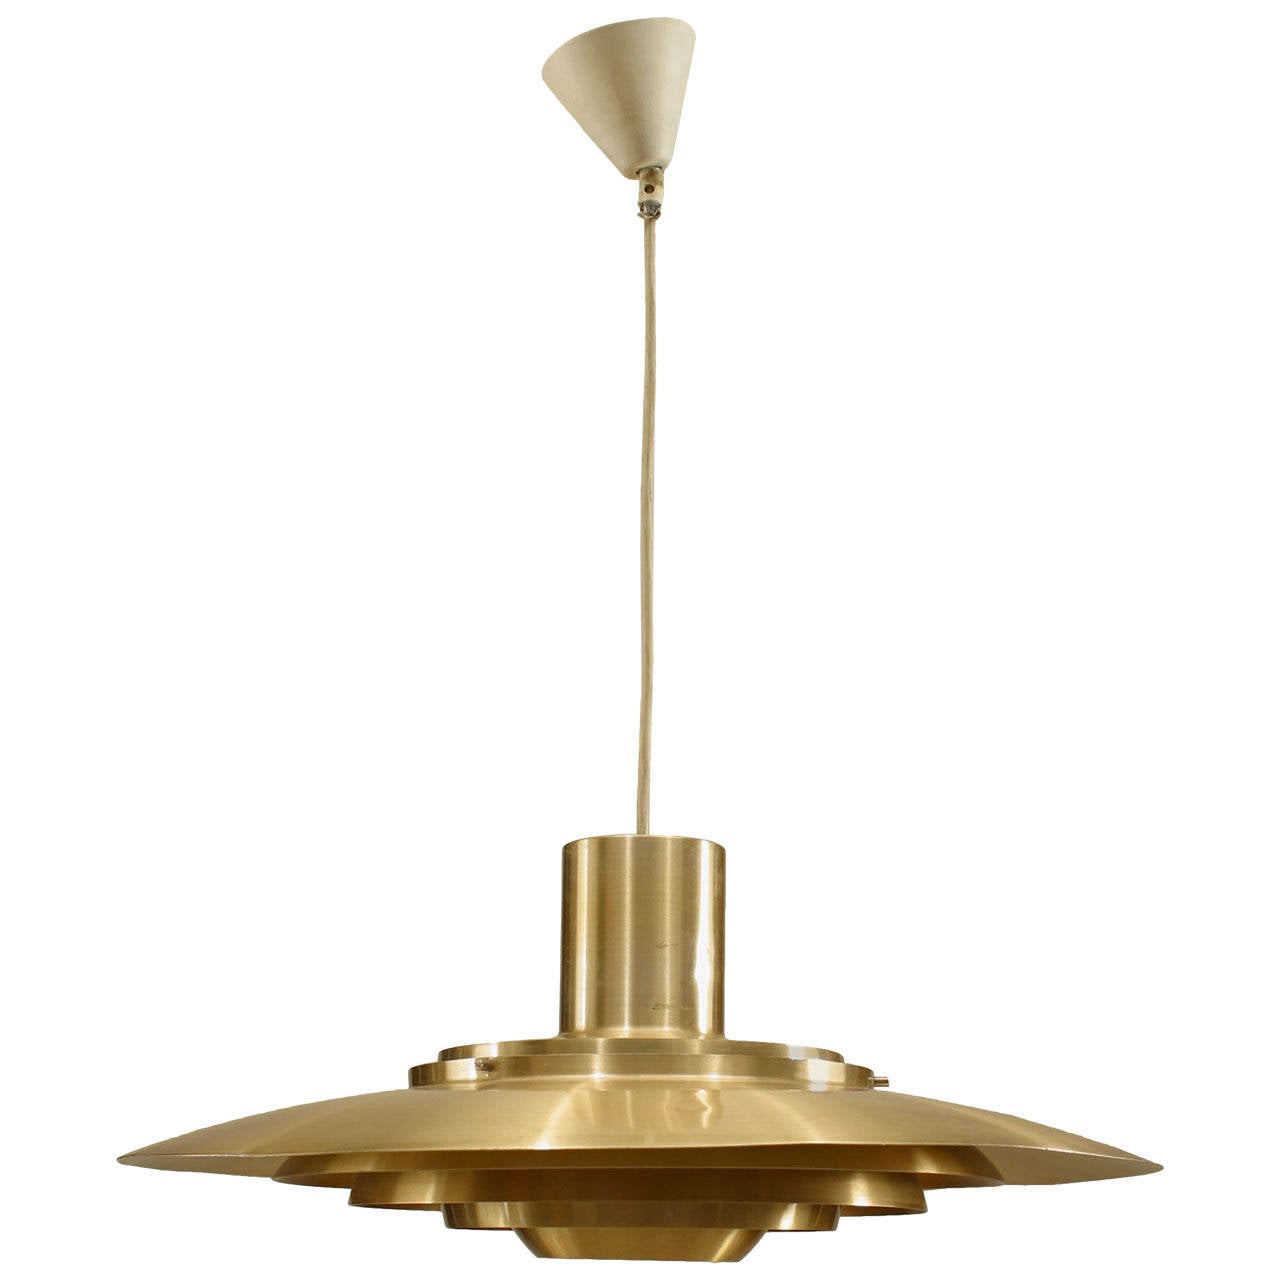 Scandinavian mid century modern brass disc pendant light for Mid century modern pendant light fixtures